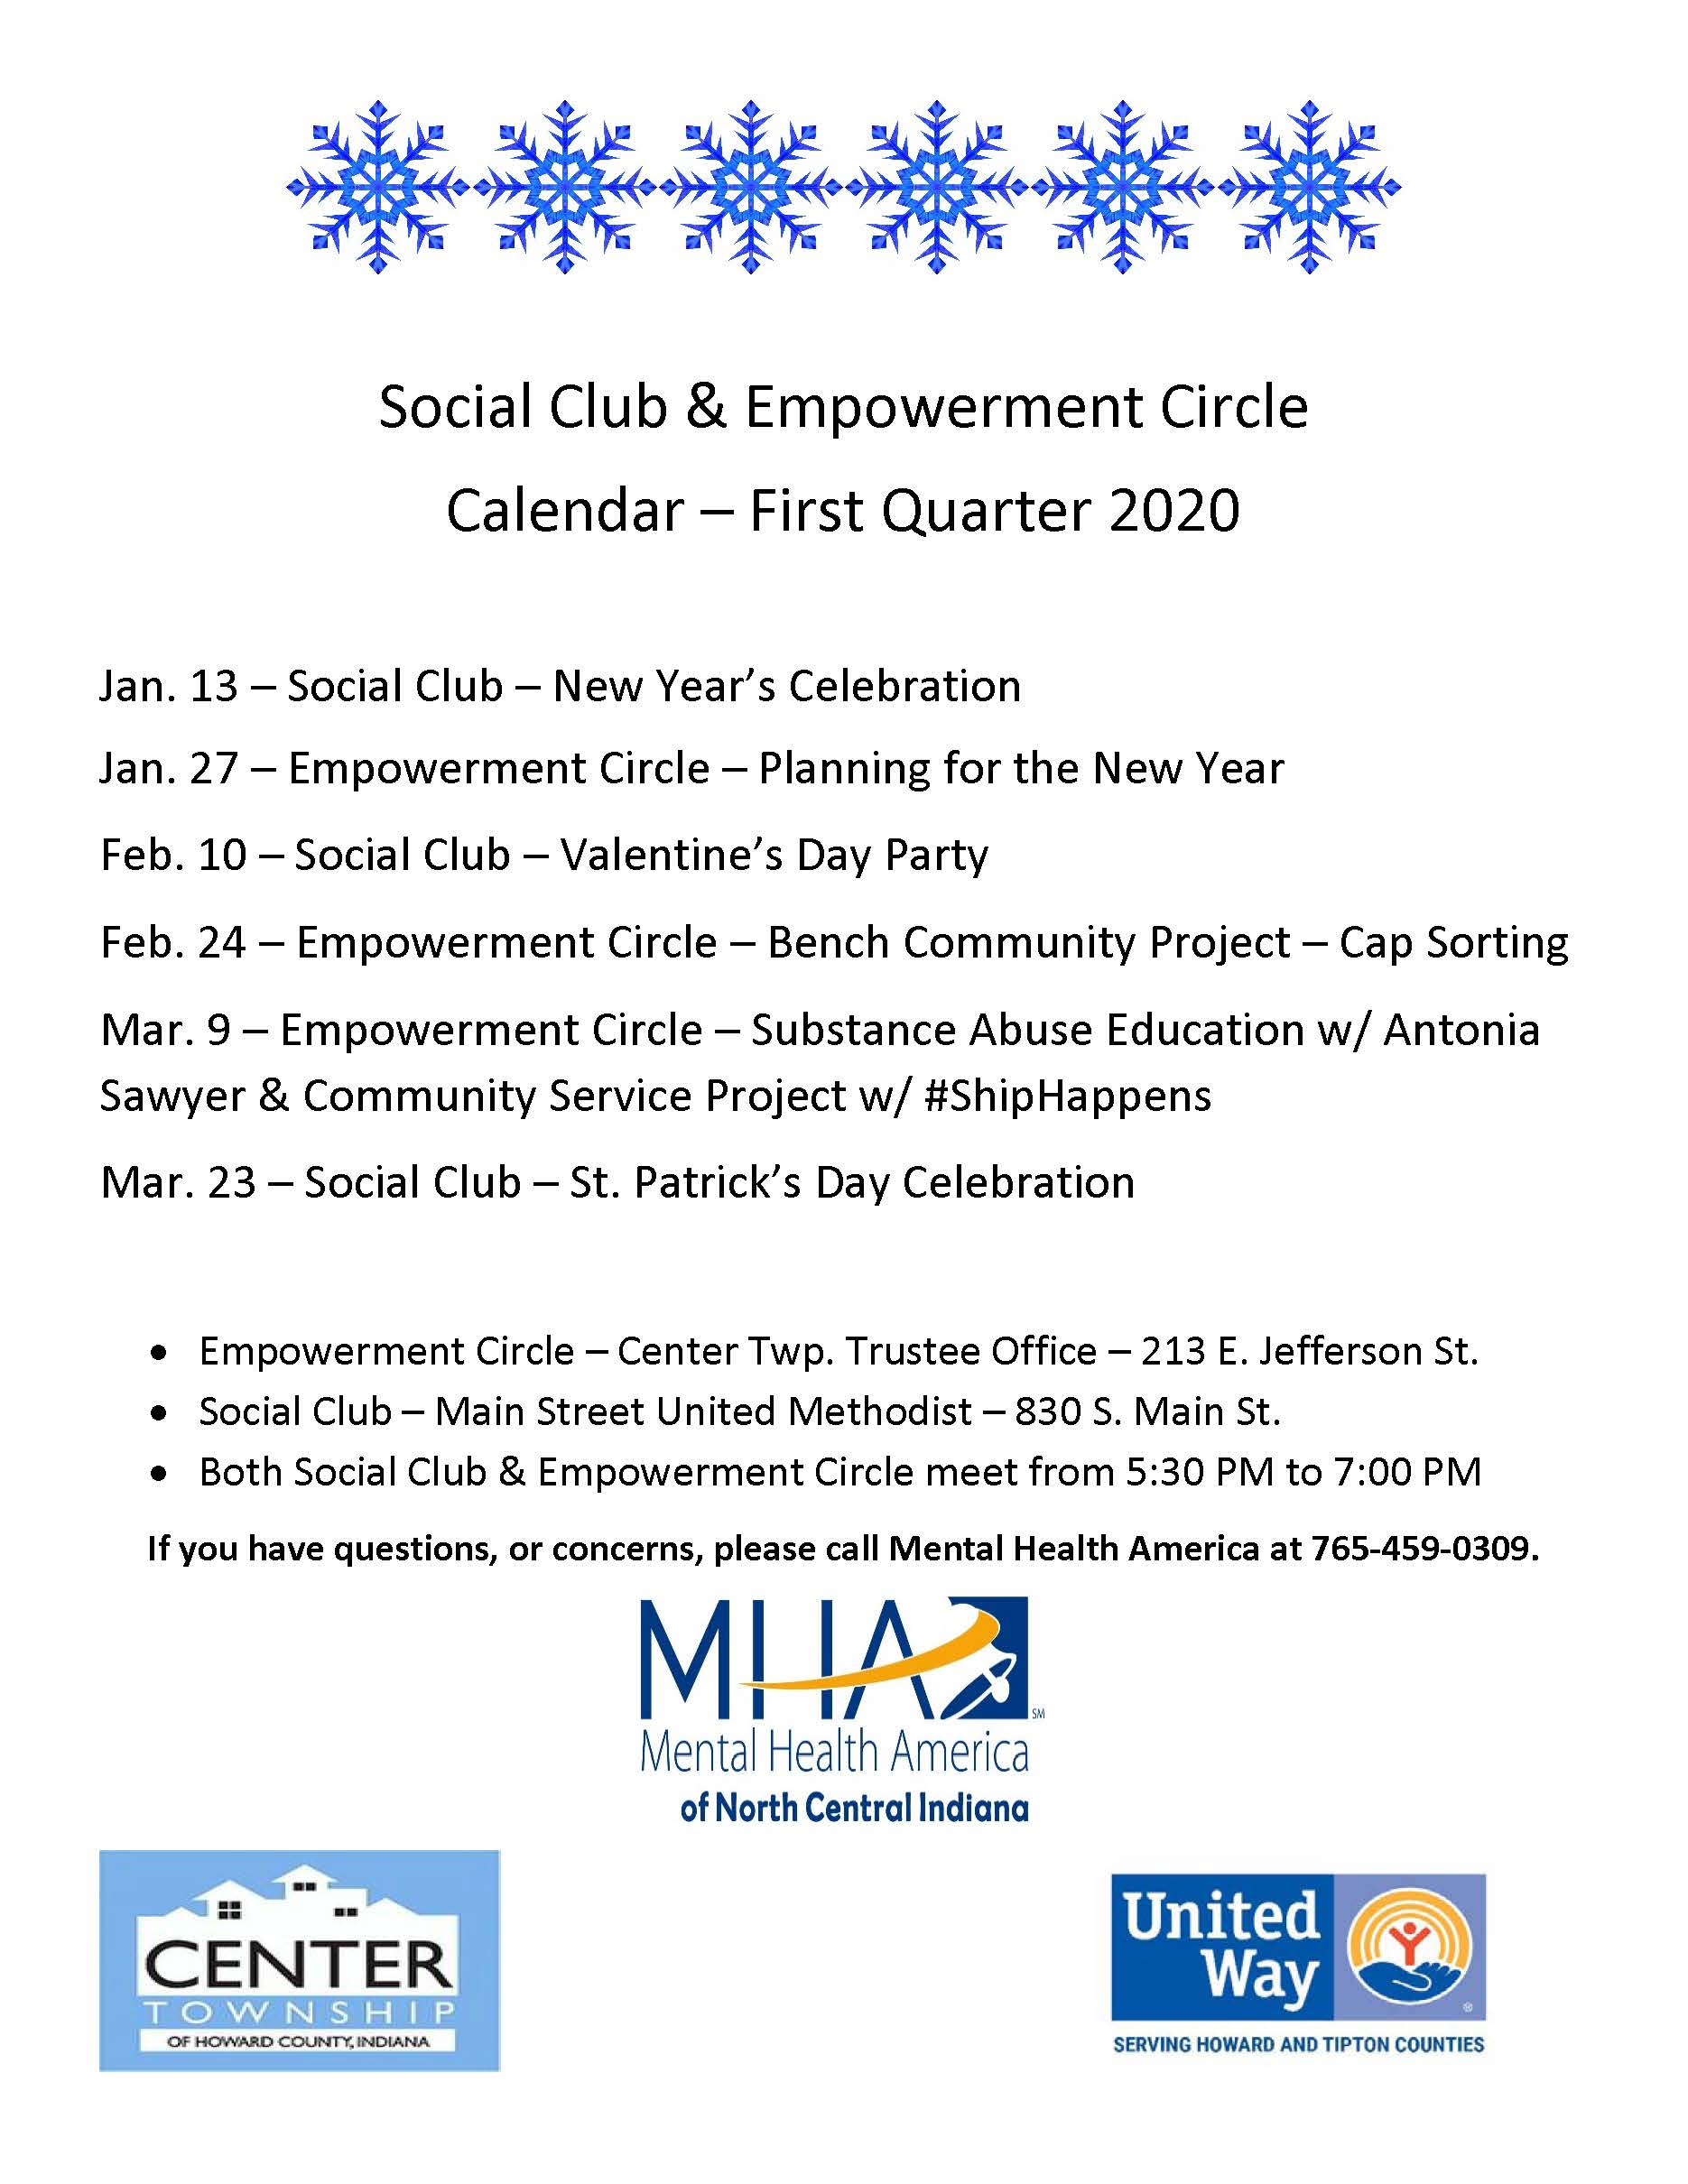 Empowerment Circle - Planning Meeting